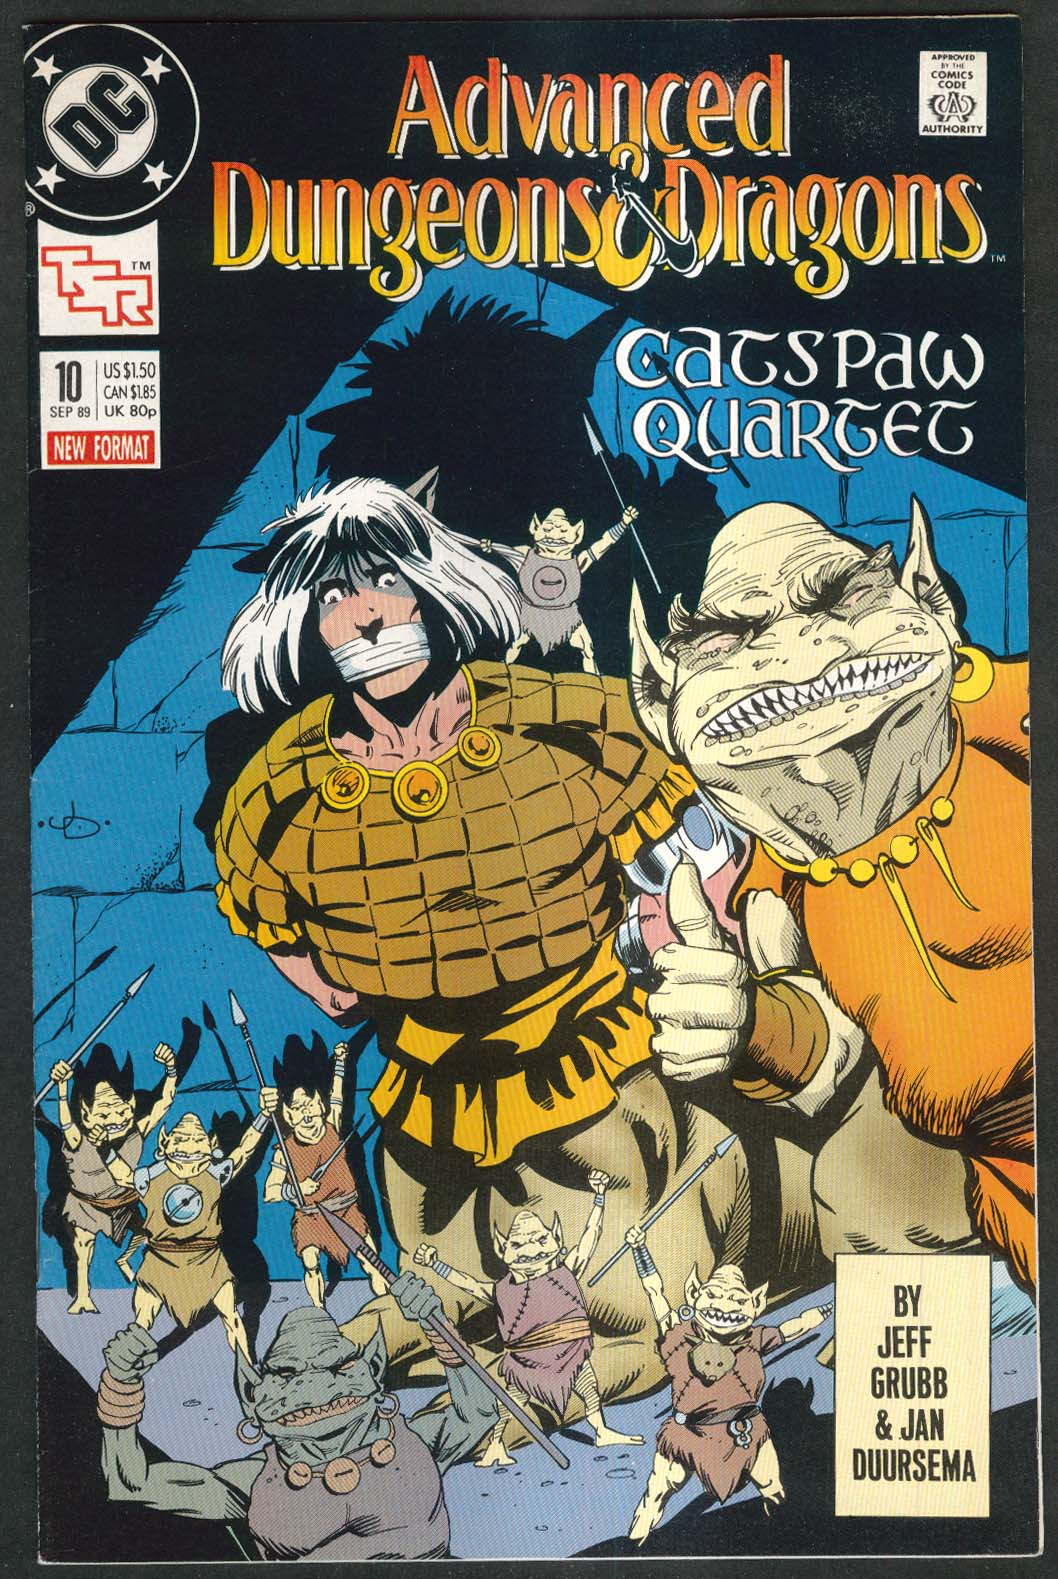 ADVANCED DUNGEONS & DRAGONS #10 DC comic book 9 1989 TSR